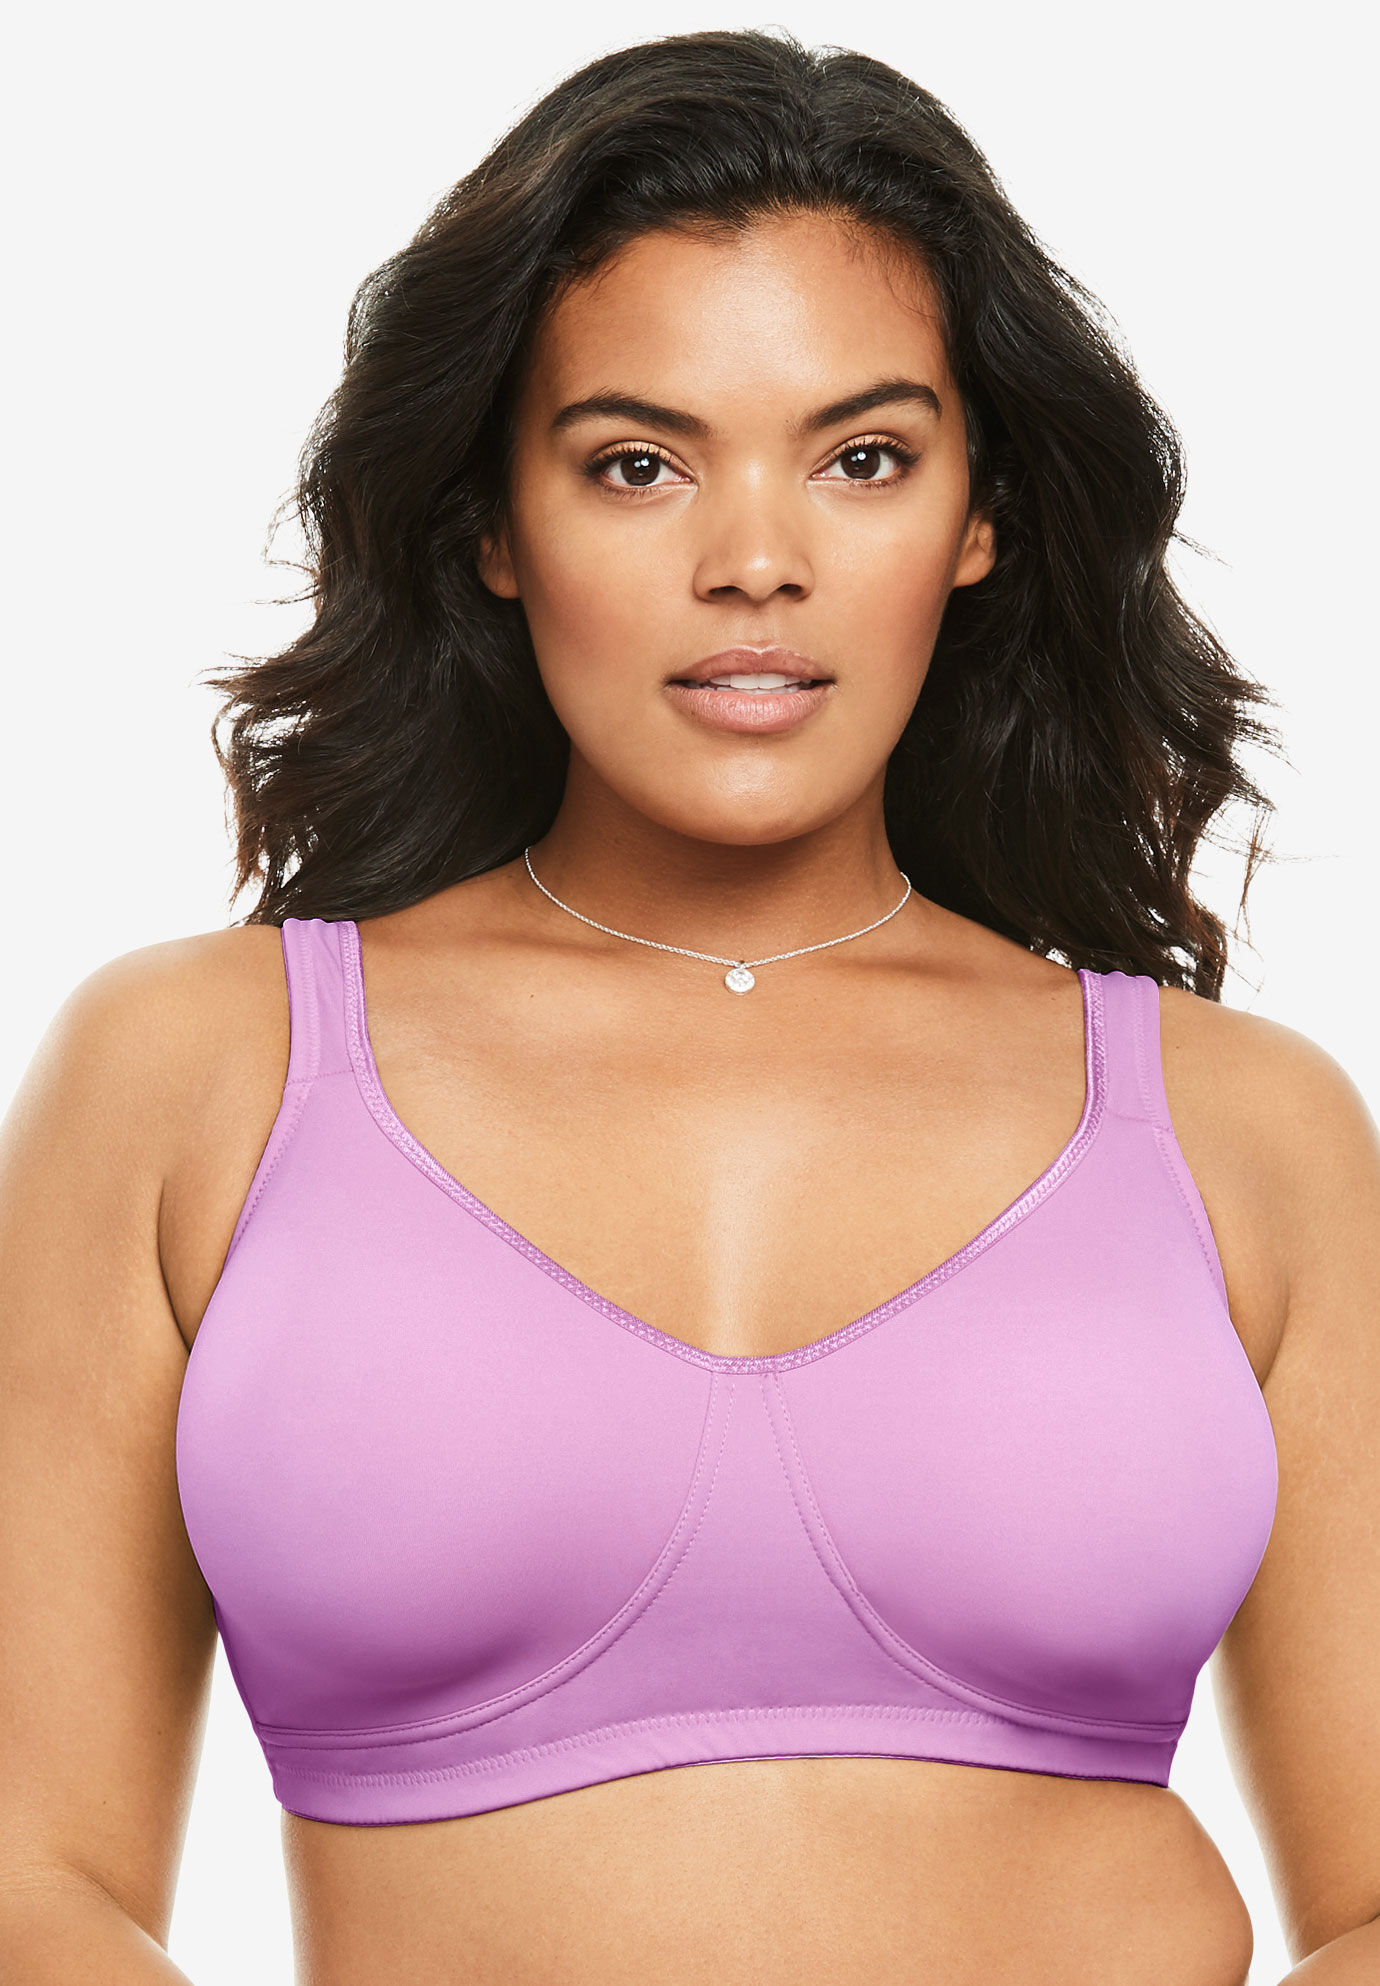 Wireless bra by comfort choice also plus size bras with large cup sizes woman within rh womanwithin